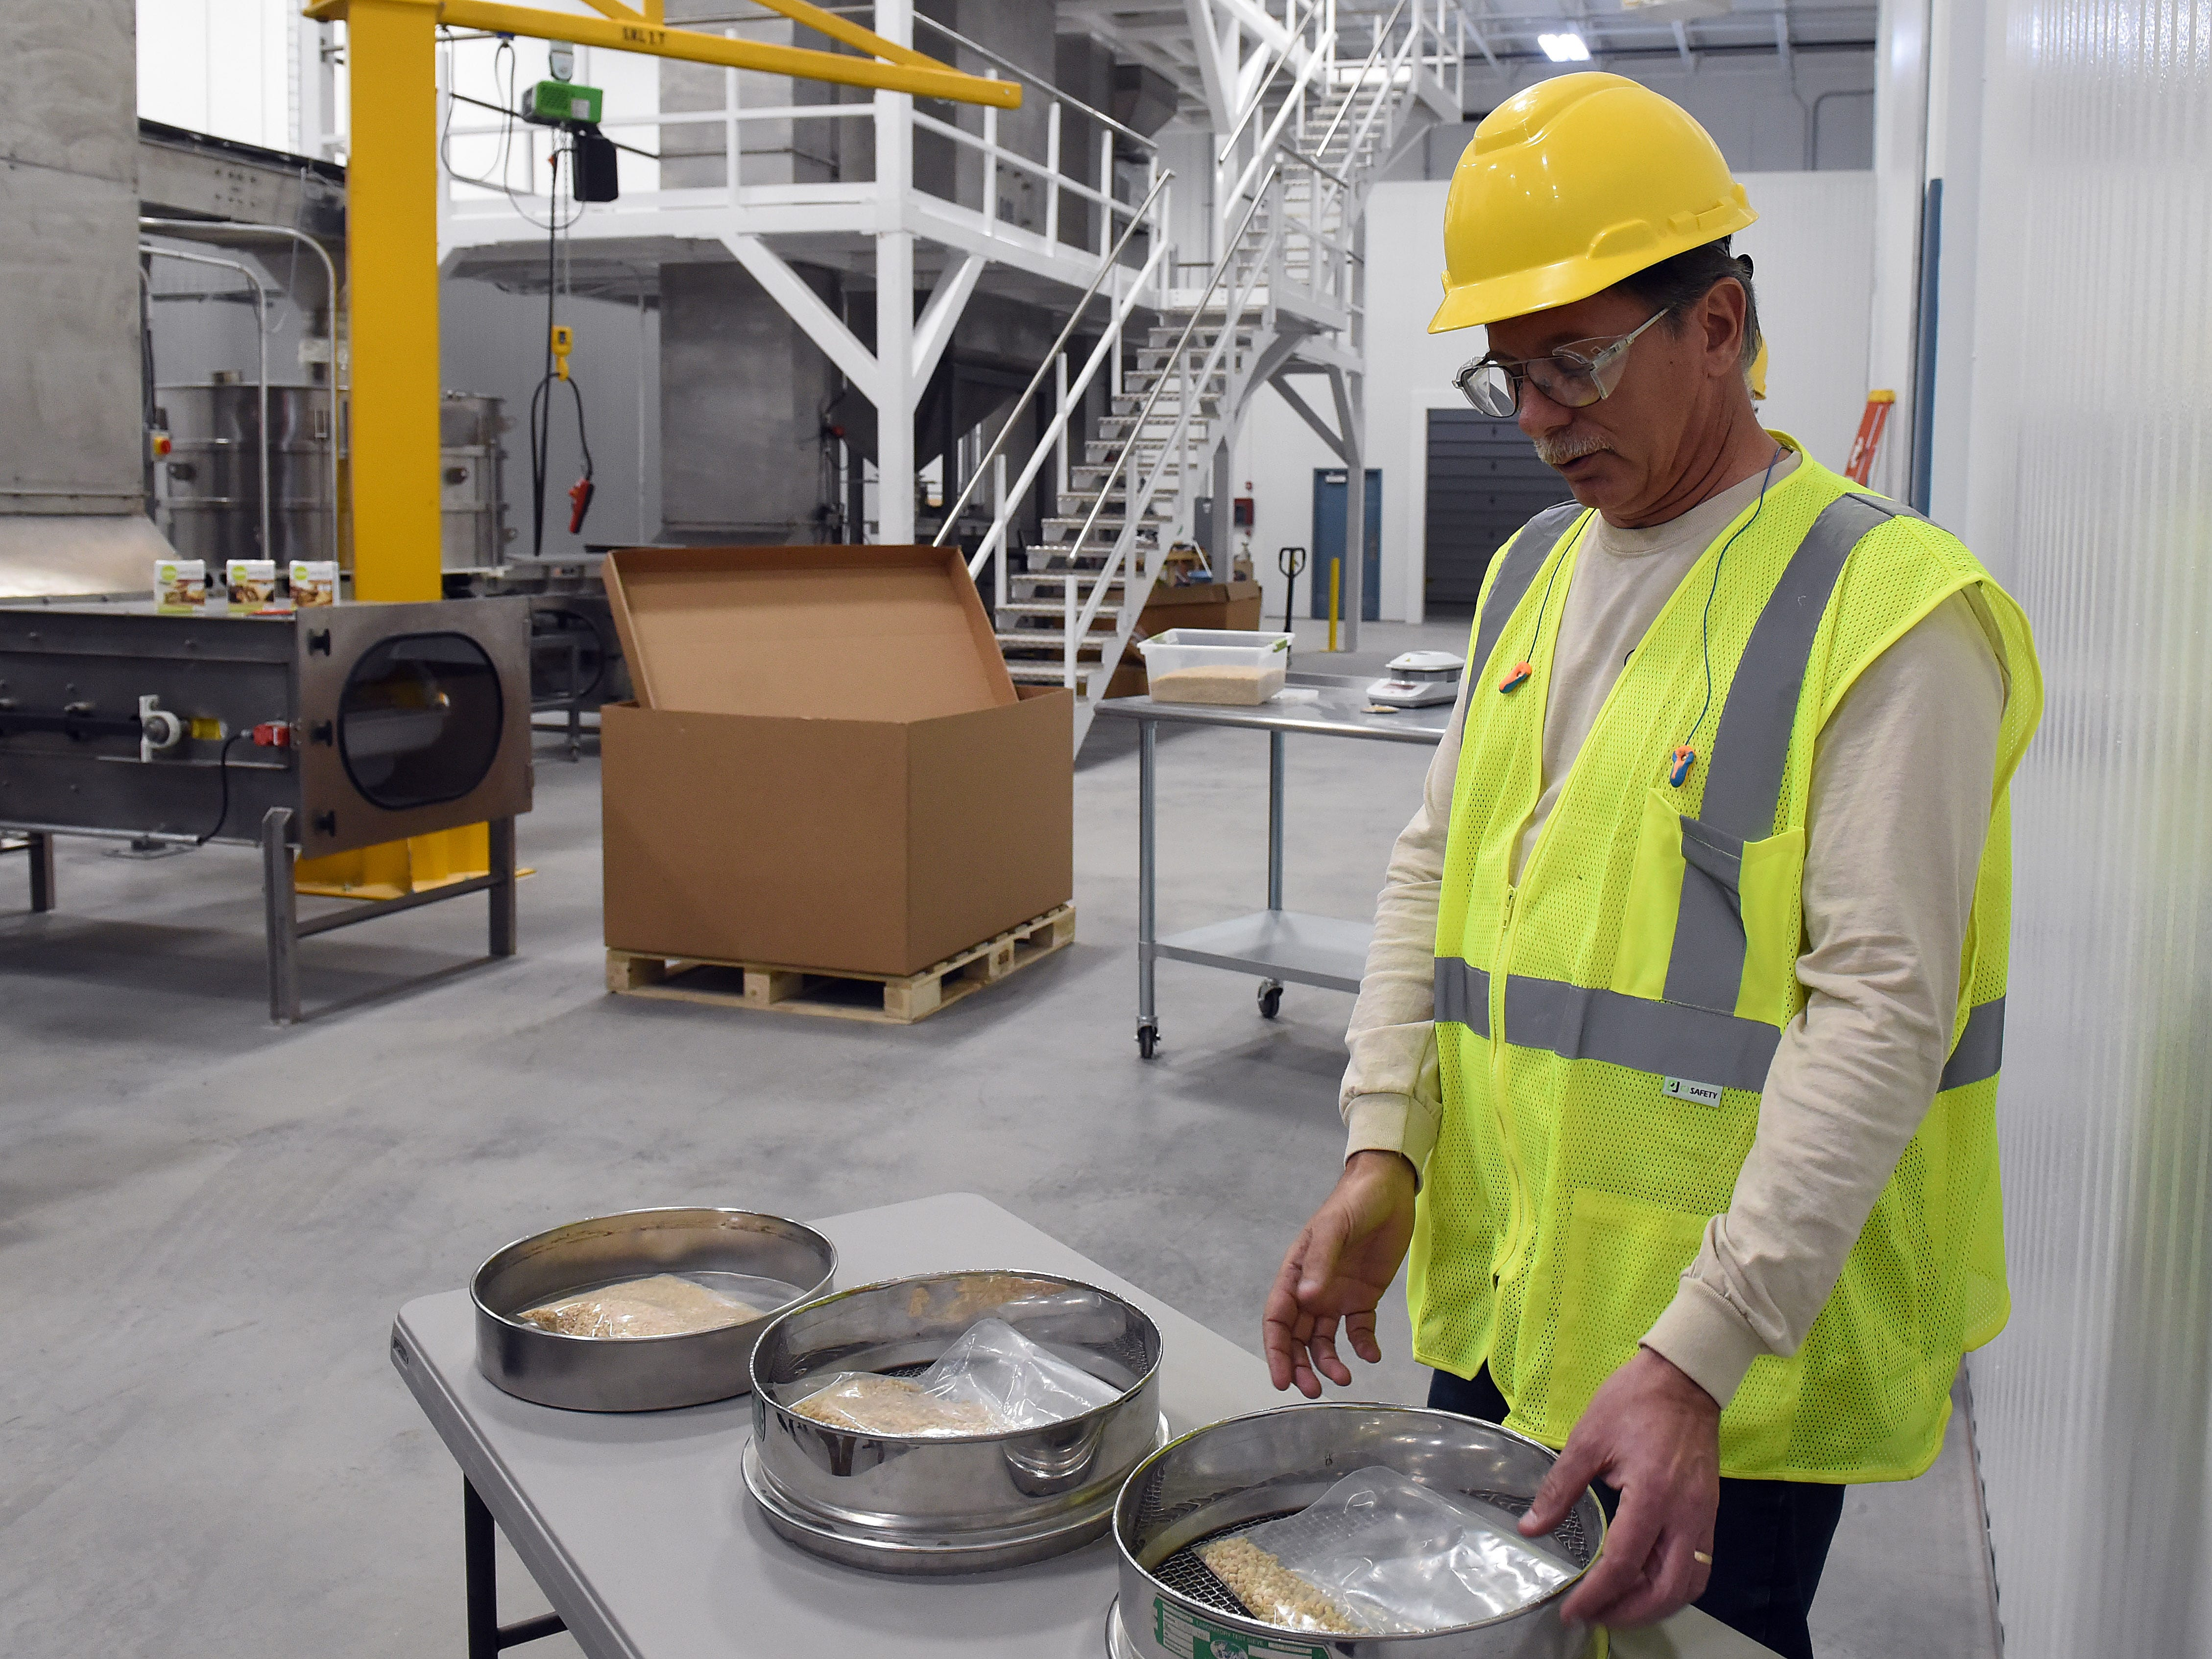 Brad McCullough demonstrates the sorting and shifting process at GB Food. The company, a partnership of companies in the United Kingdom and China, uses a non-GMO soy protein as the key ingredient in its food.